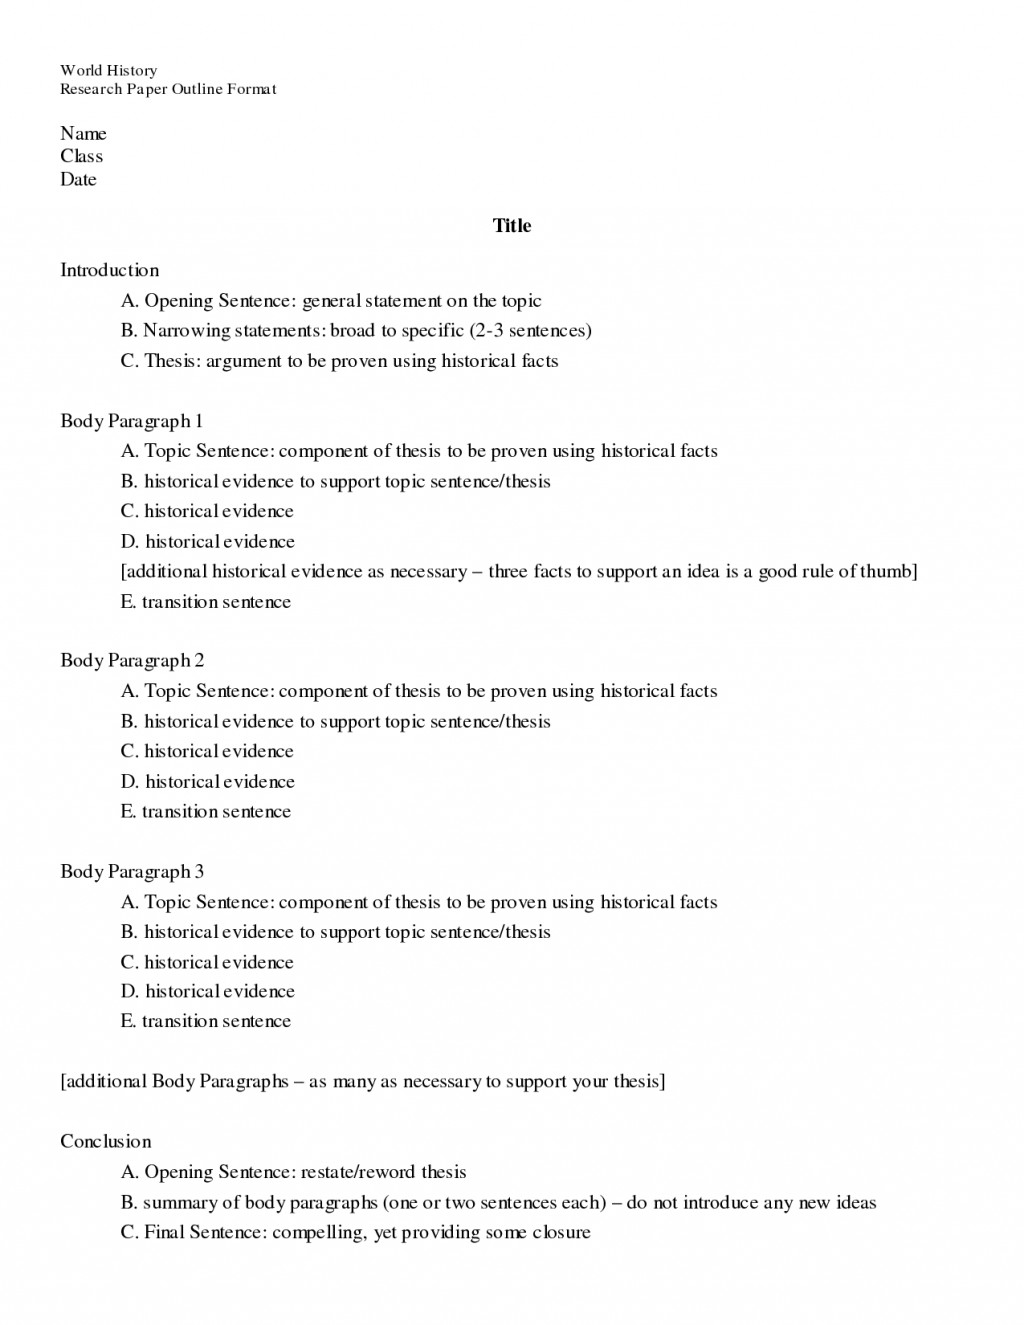 008 Research Paper College Outlinemat Awesome Outline Format For Large